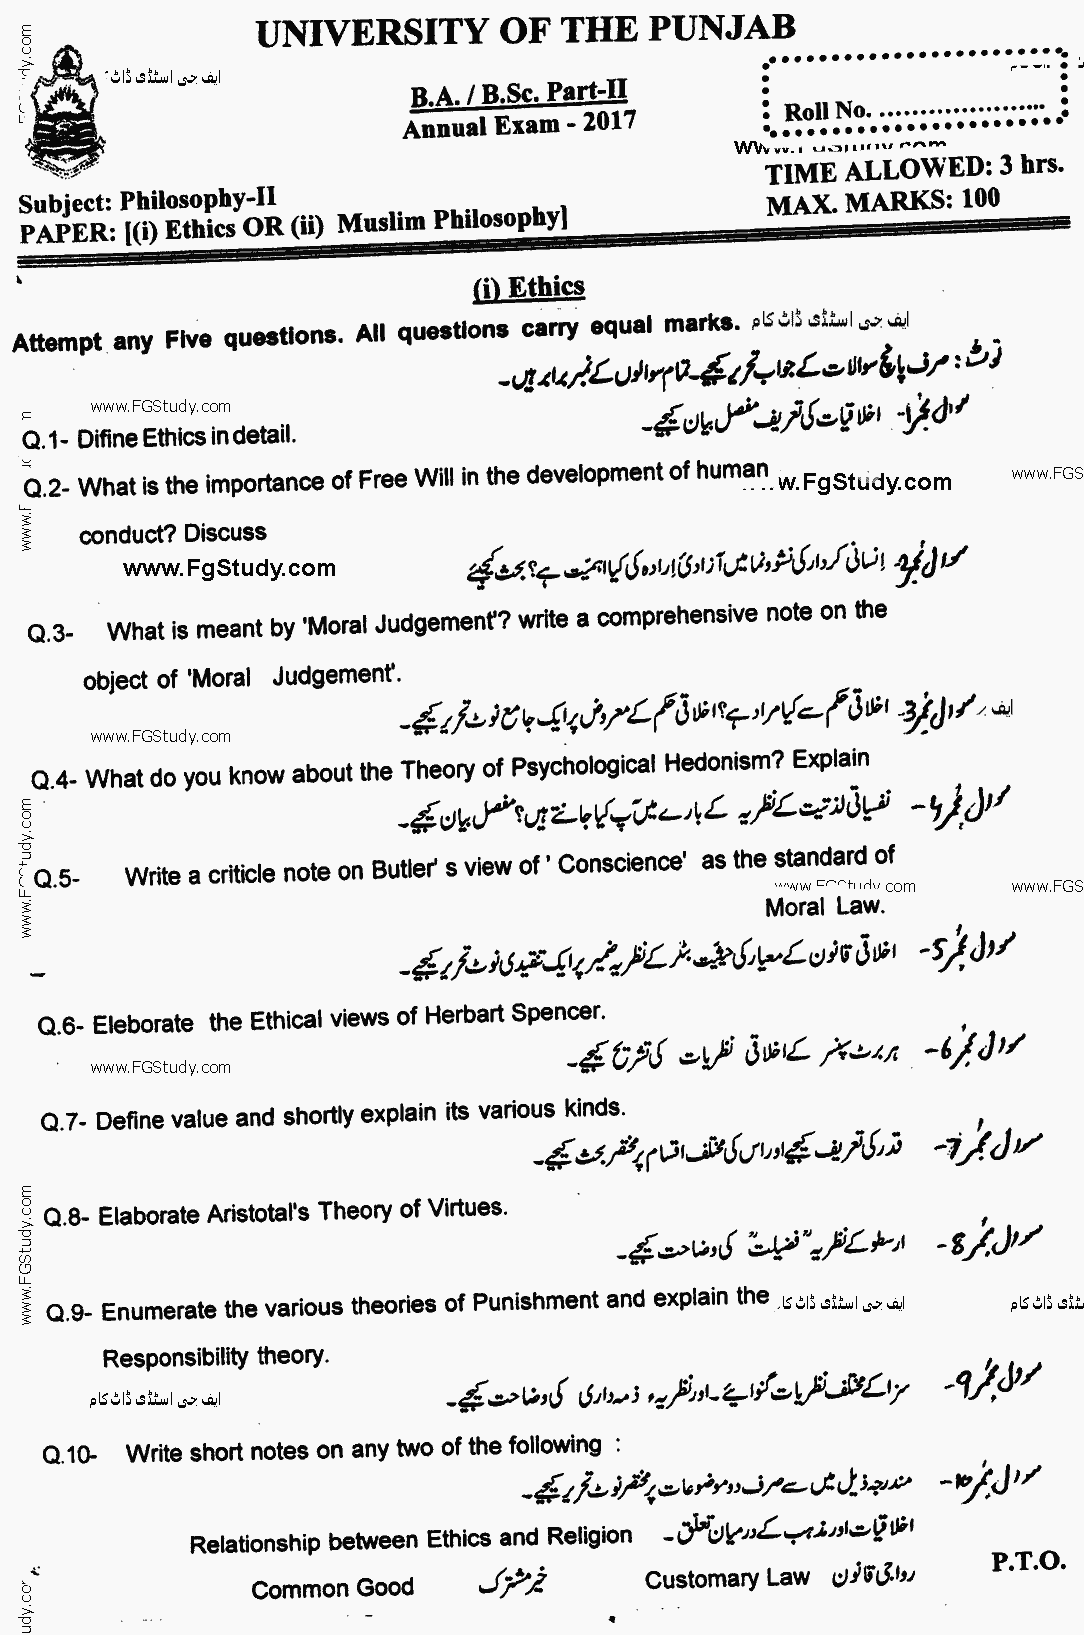 Philosophy Ethic OR Muslim BA Part 2 Past Papers 2017